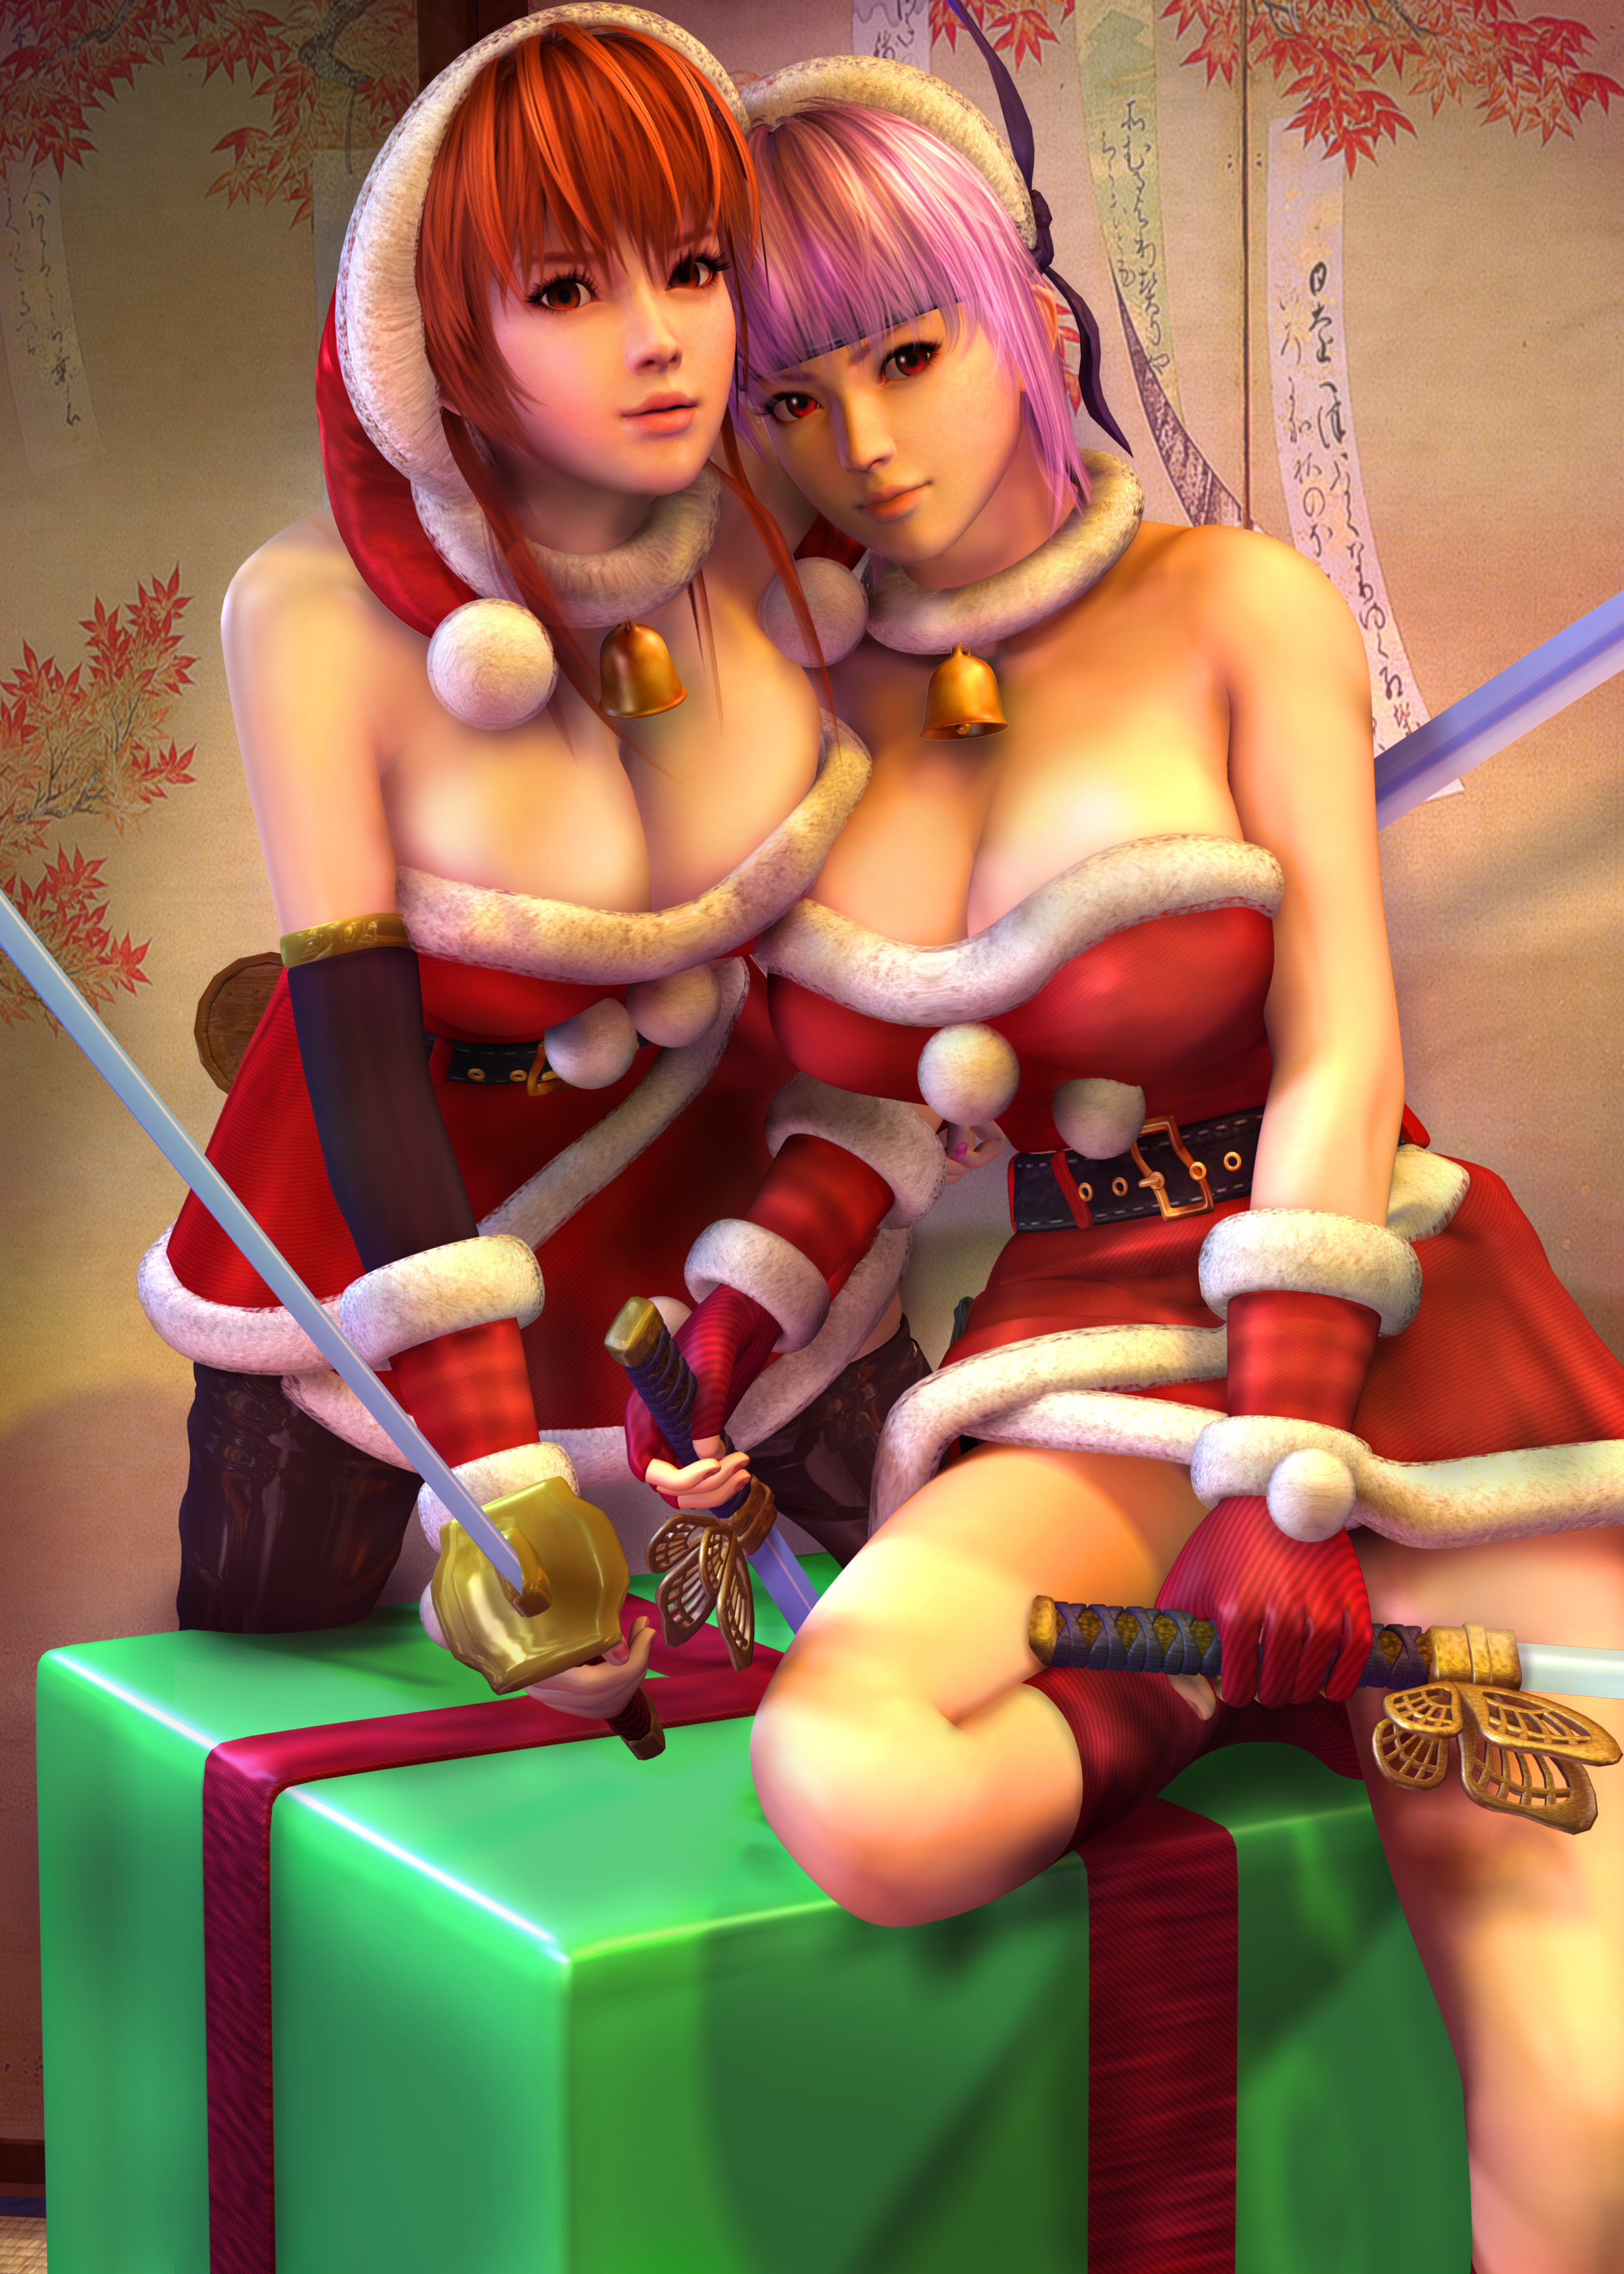 Merry Christmas by 3dbabes